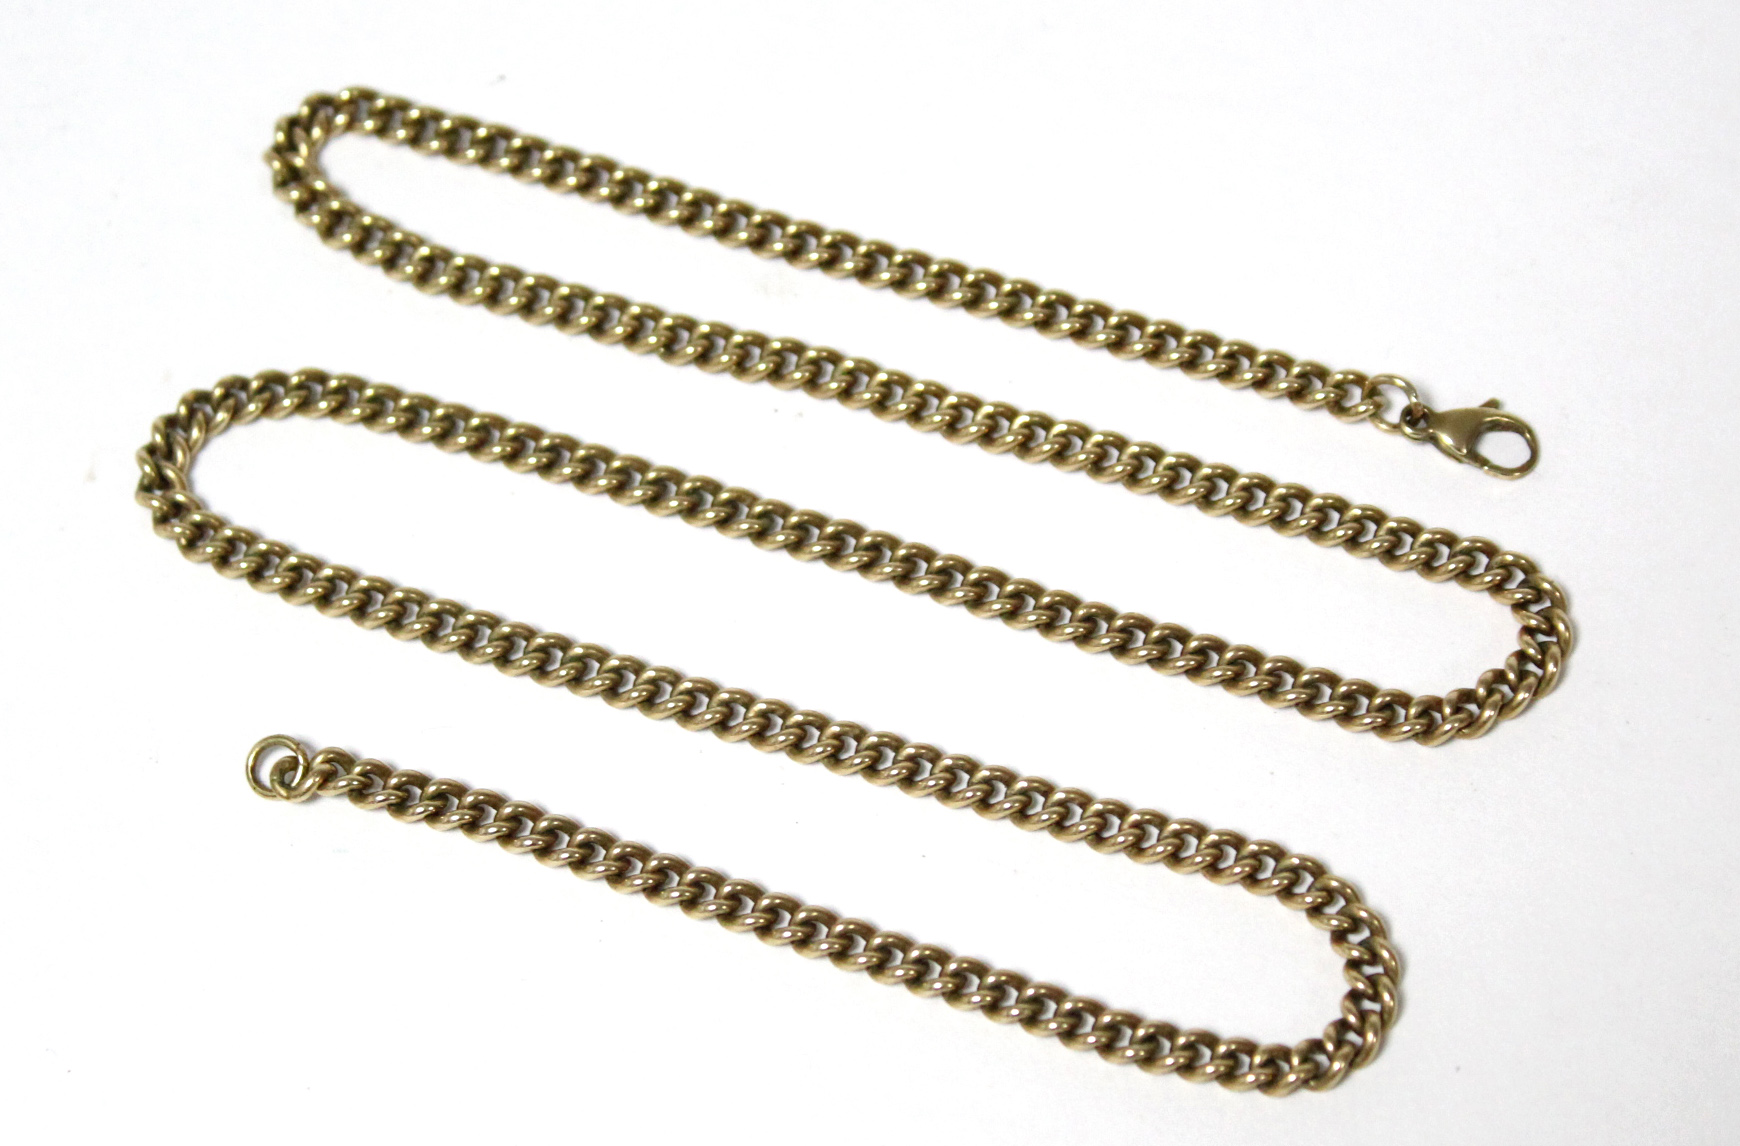 "A 9ct. gold curb-link chain, 21"" long (27gm)."